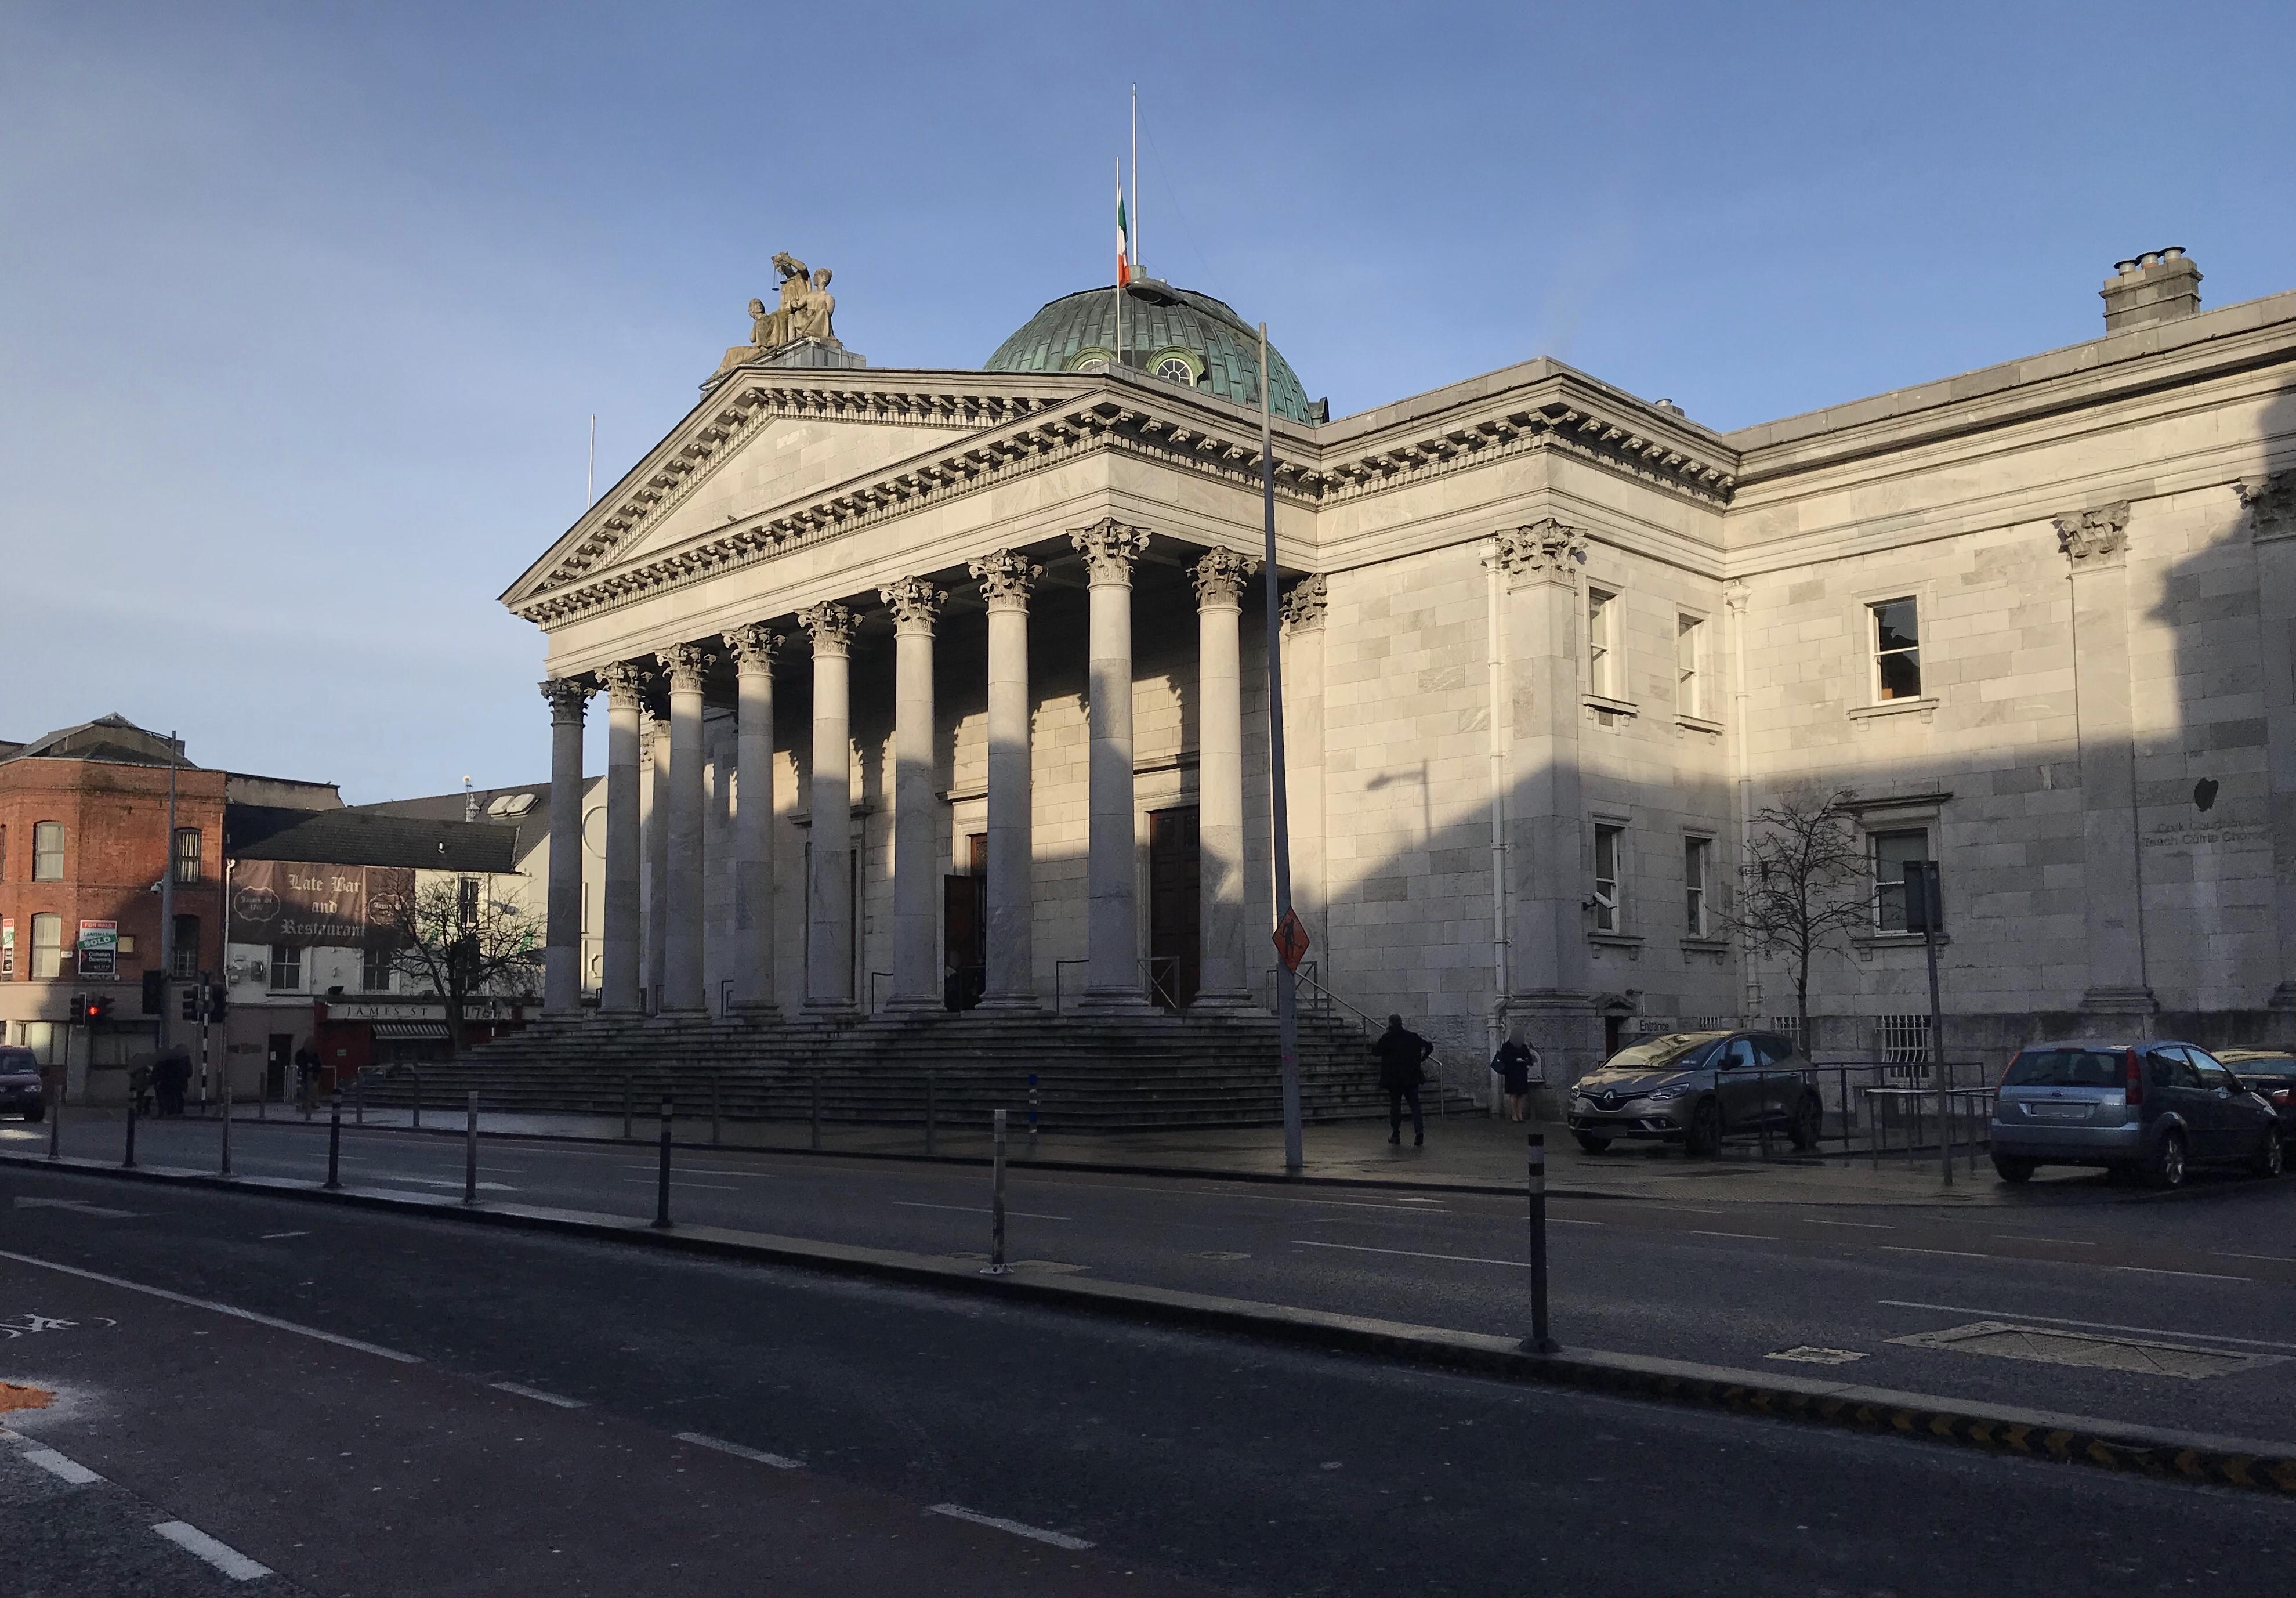 Cork_Courthouse%2C_Washington_Street.jpg